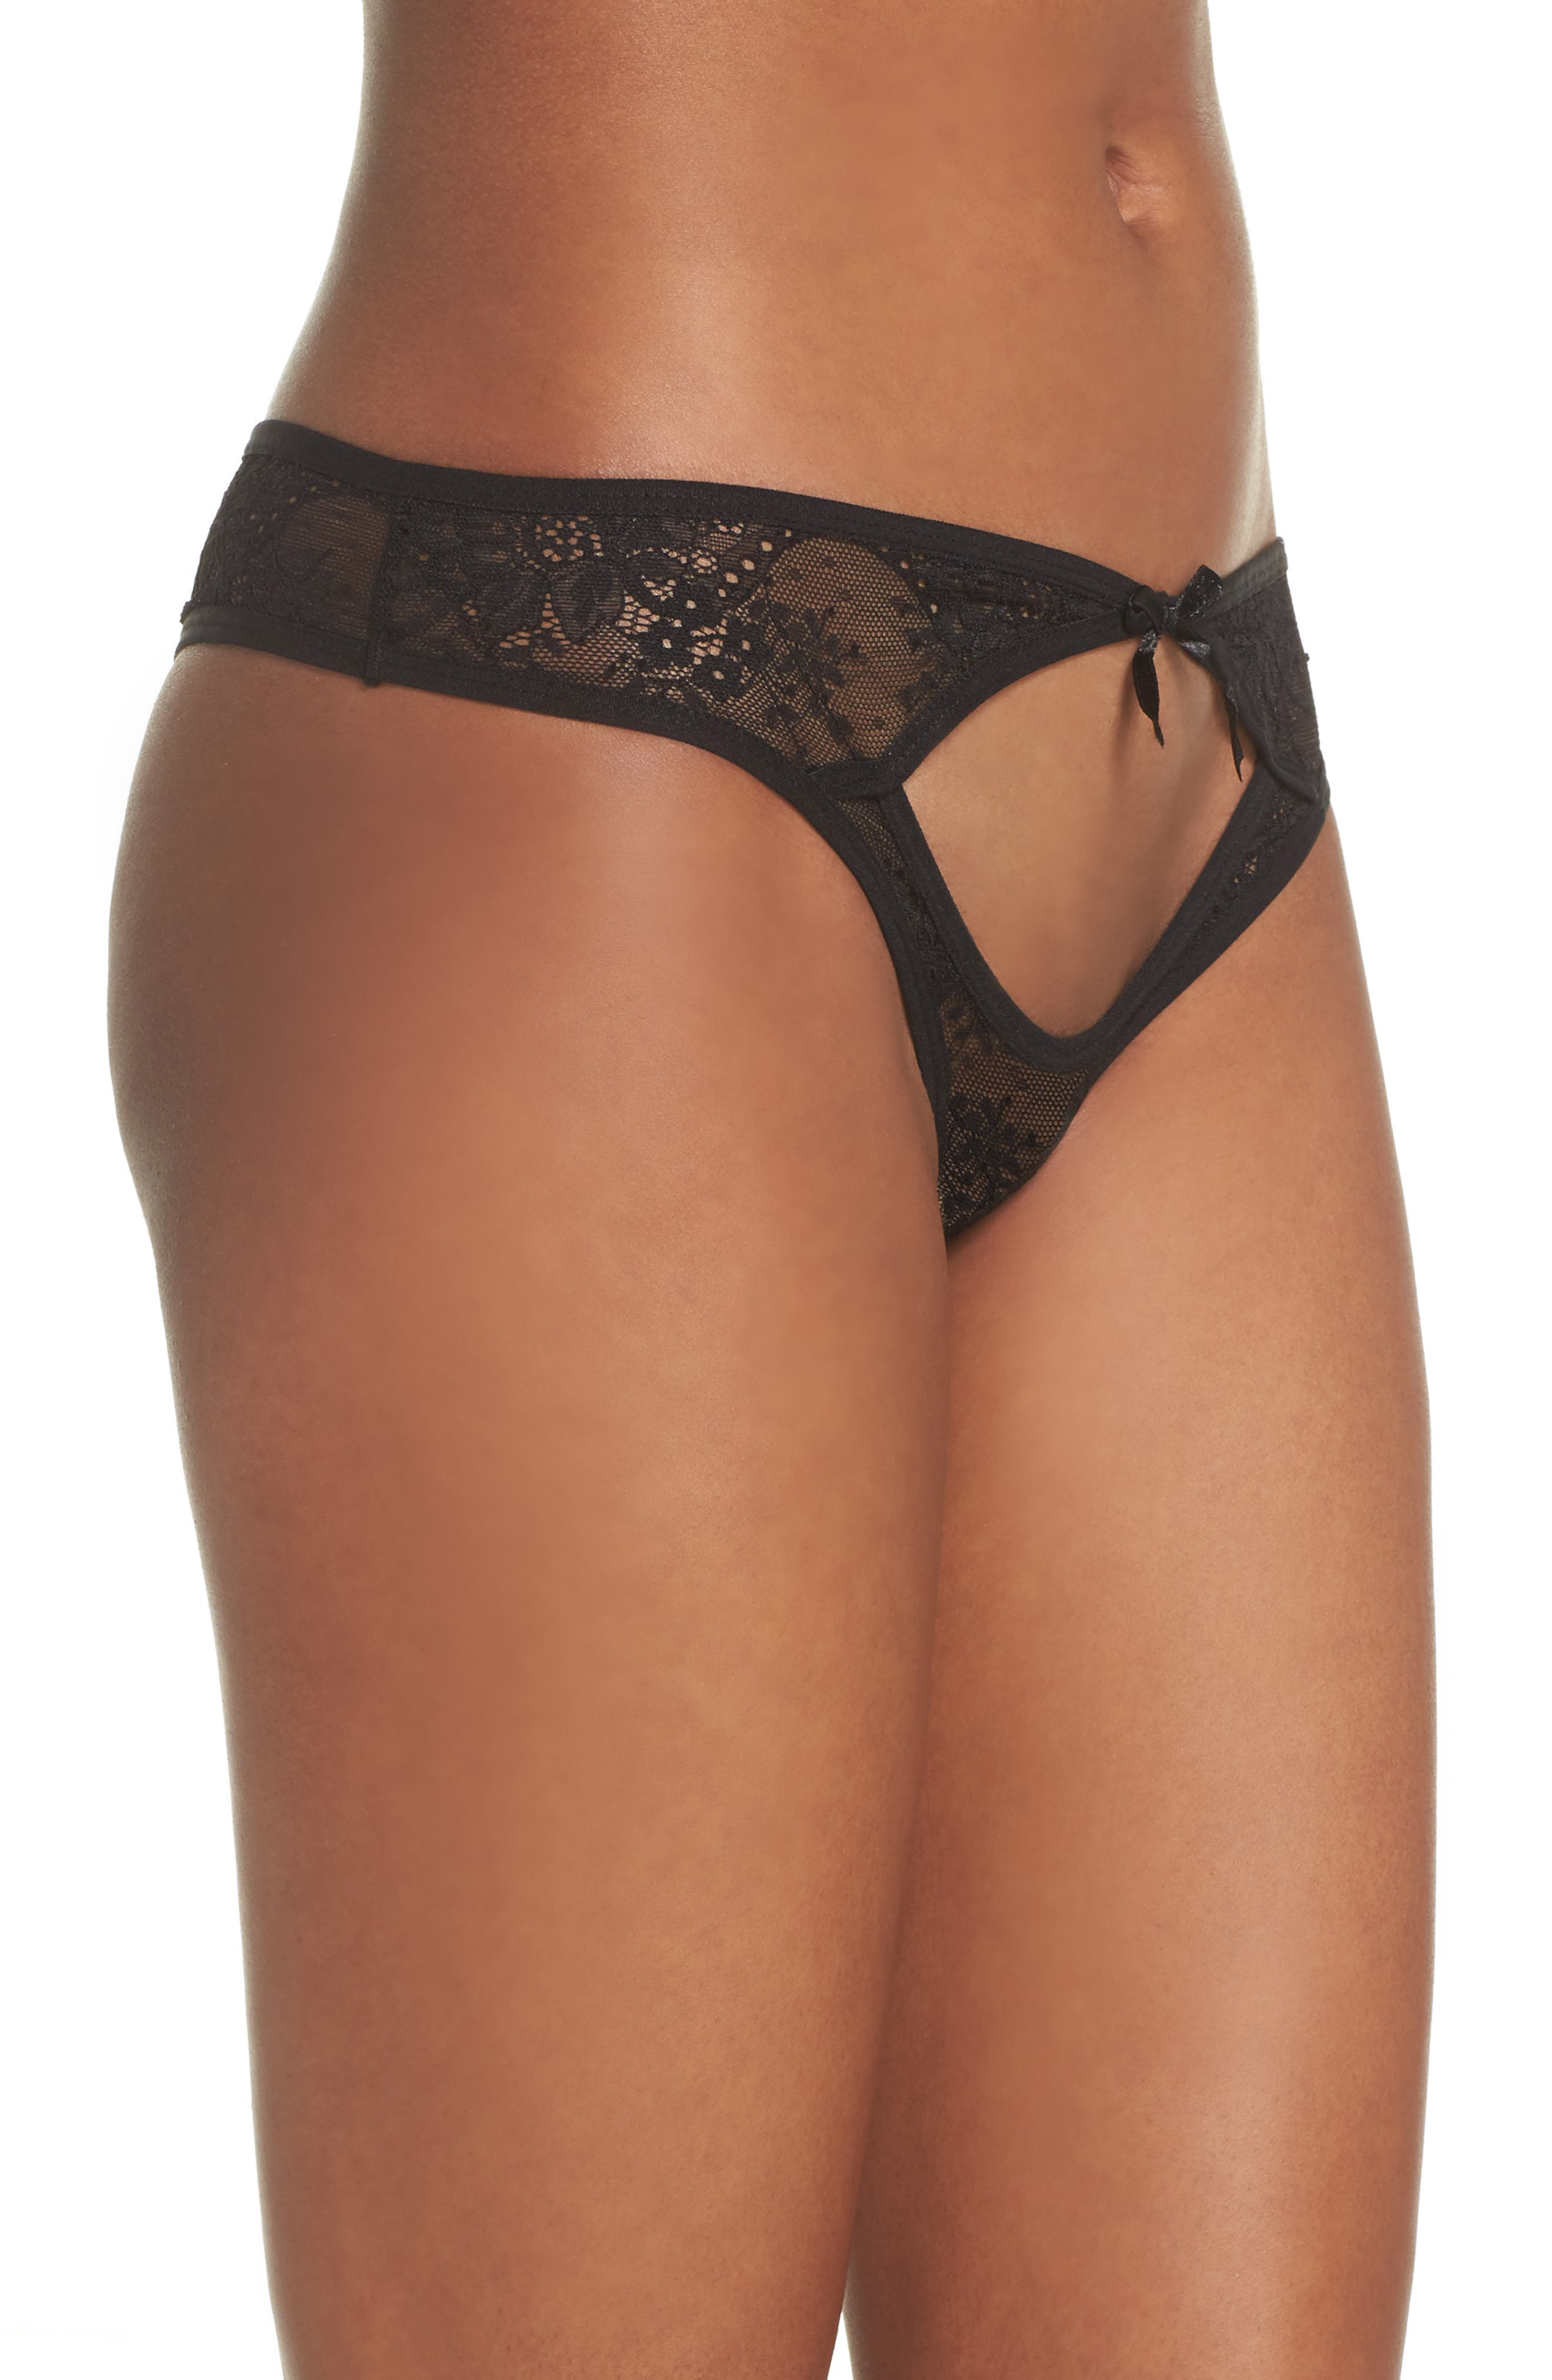 Barcelona Lace Cheeky Panties,                             Alternate thumbnail 3, color,